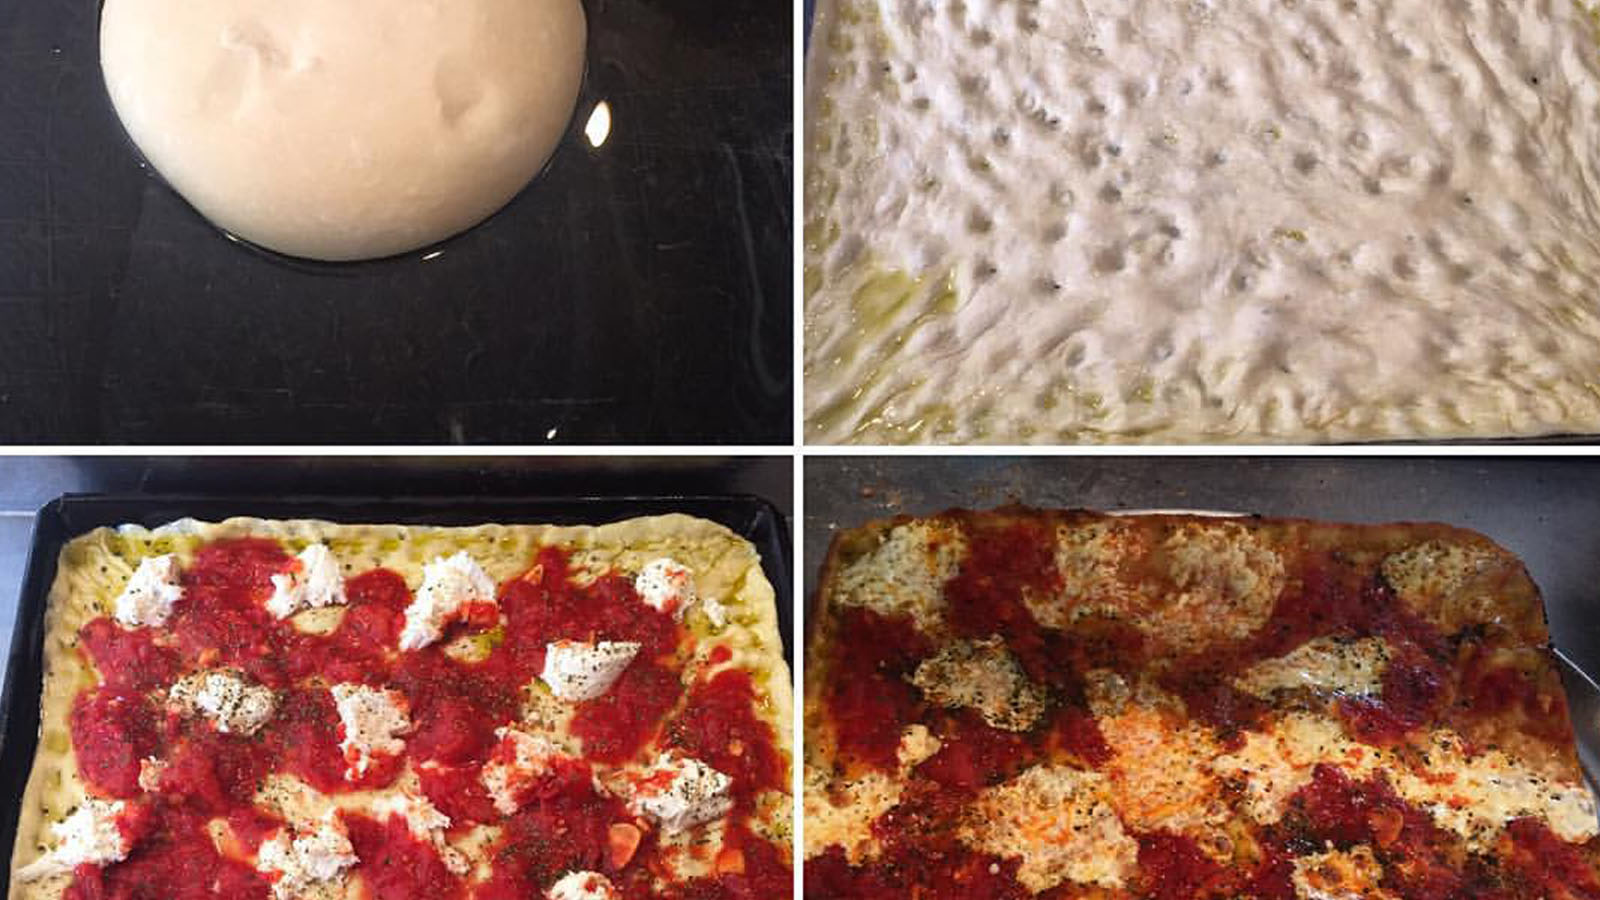 The making of a grandma pizza at Rosco's